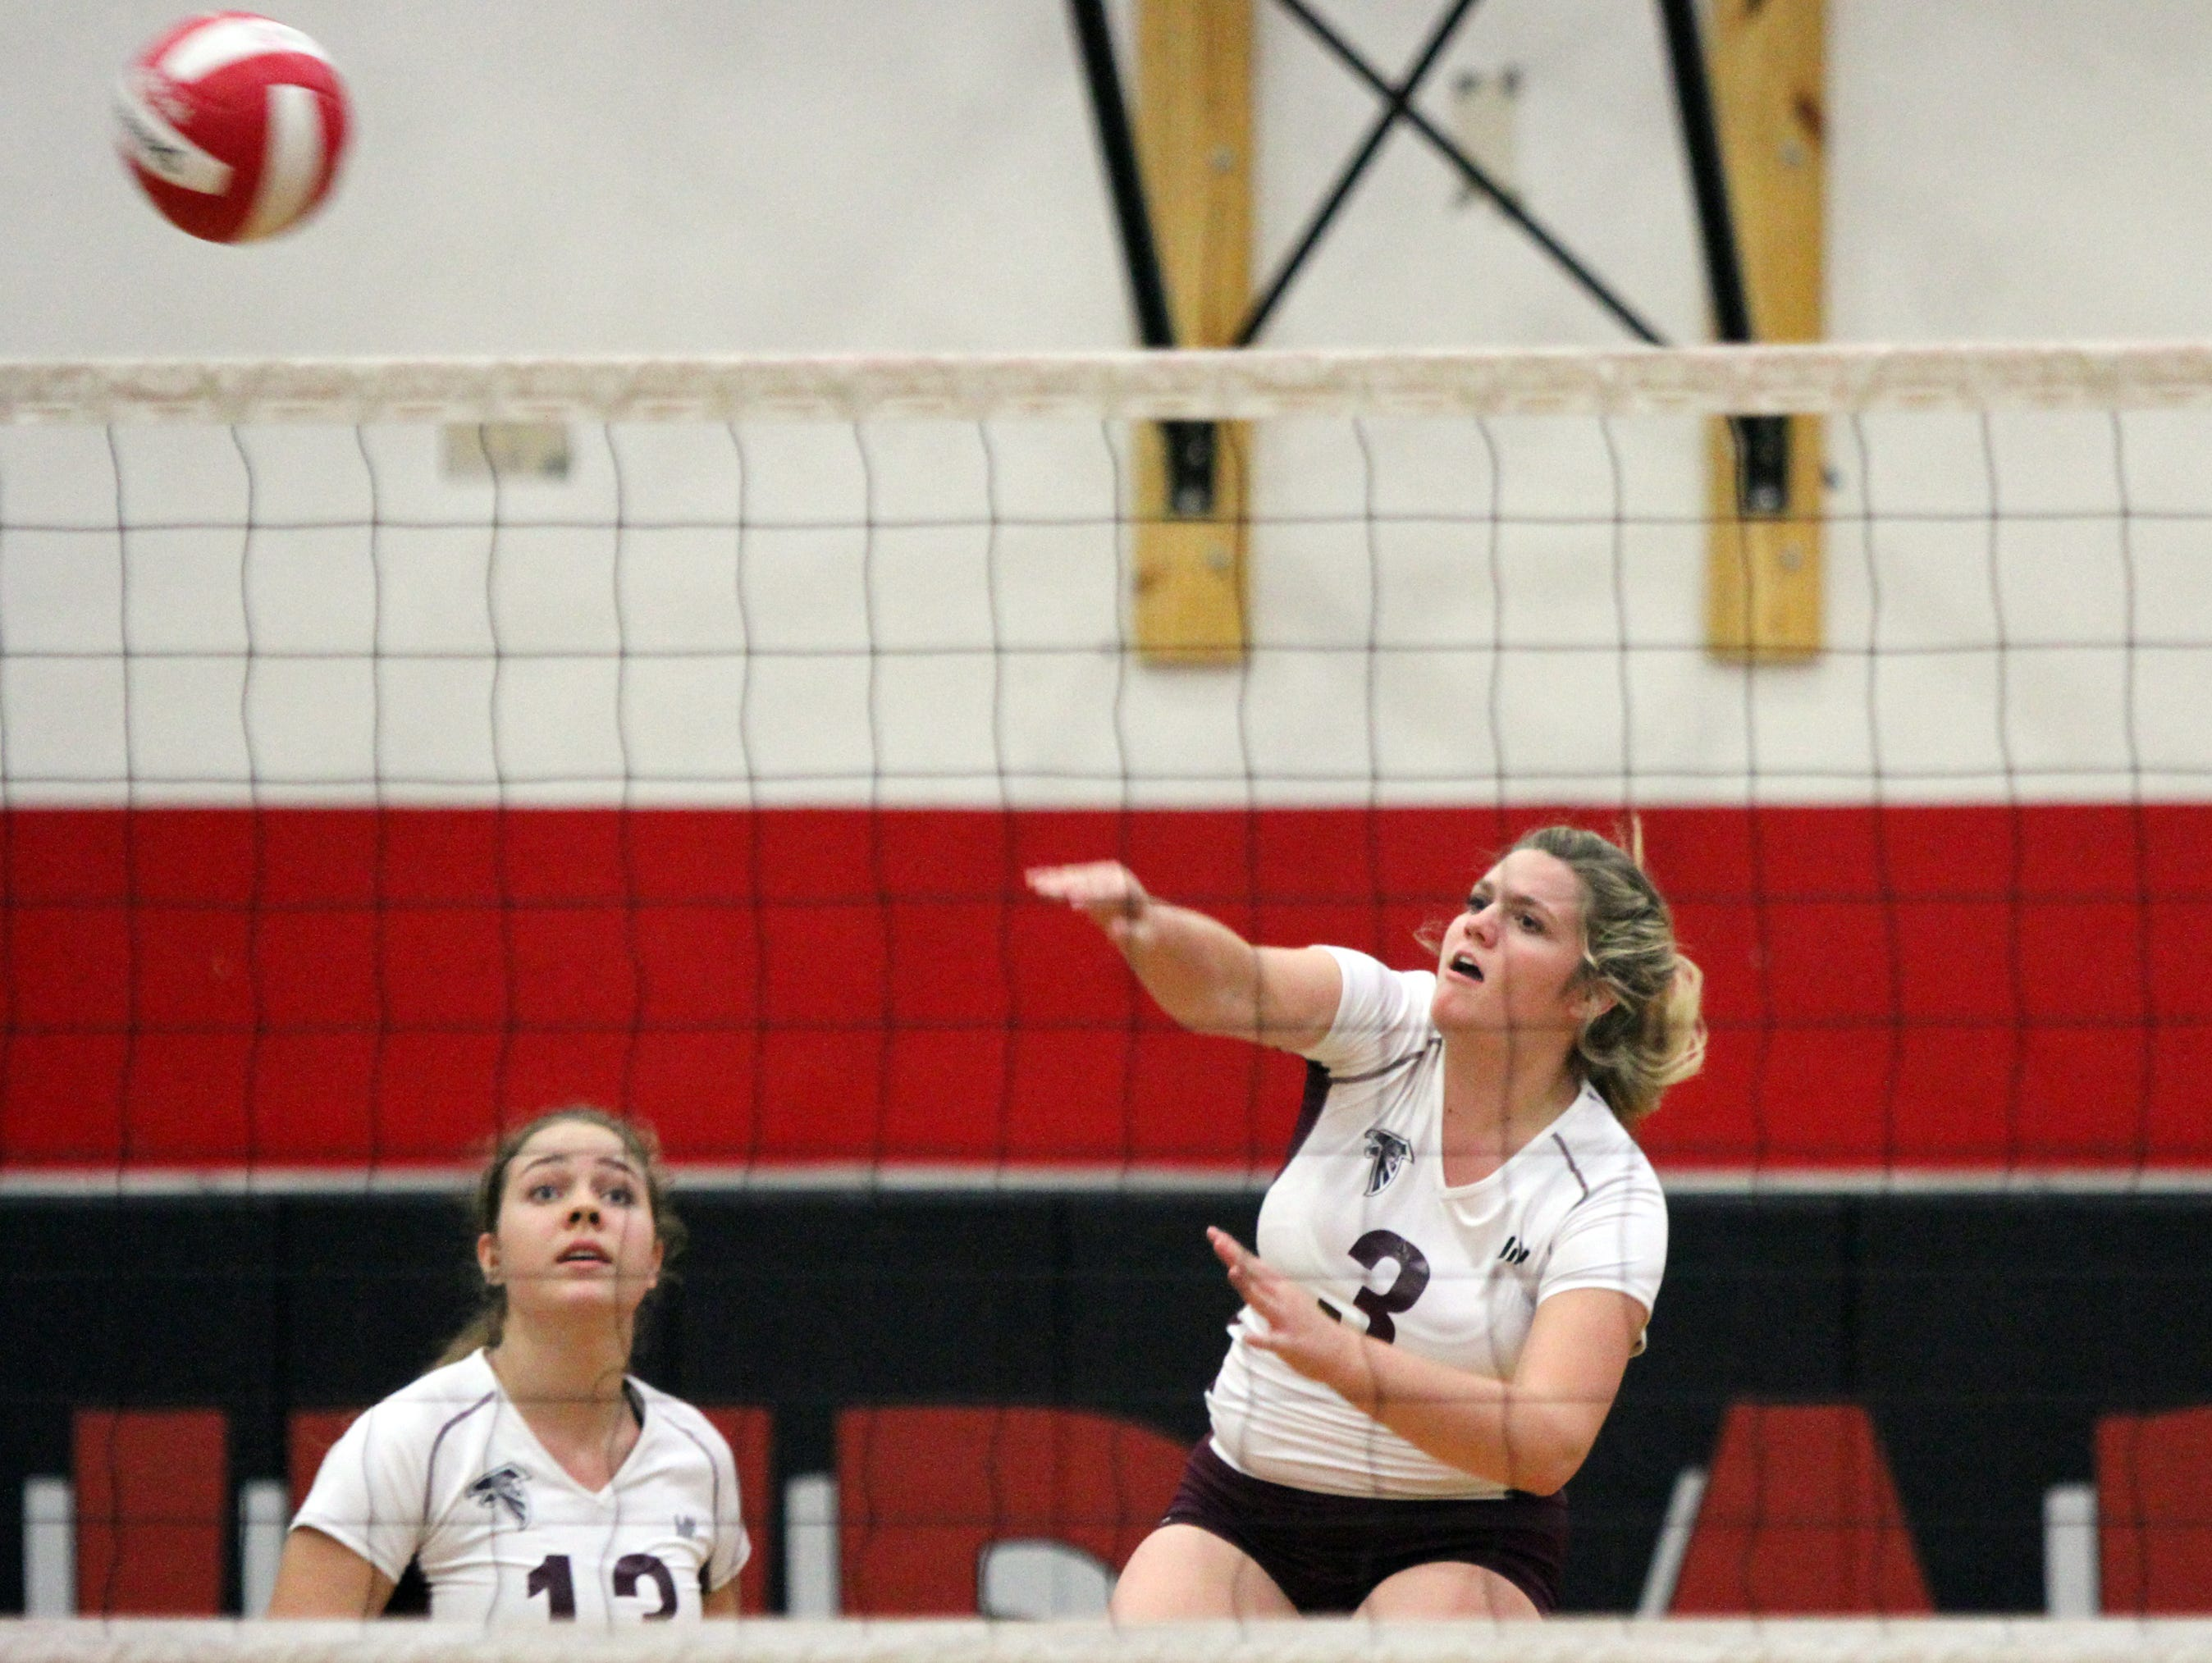 La Quinta's Jolie Samuelson spikes the ball as Camryne Sommaripa looks on during their match against Palm Springs High in Palm Springs on Tuesday.